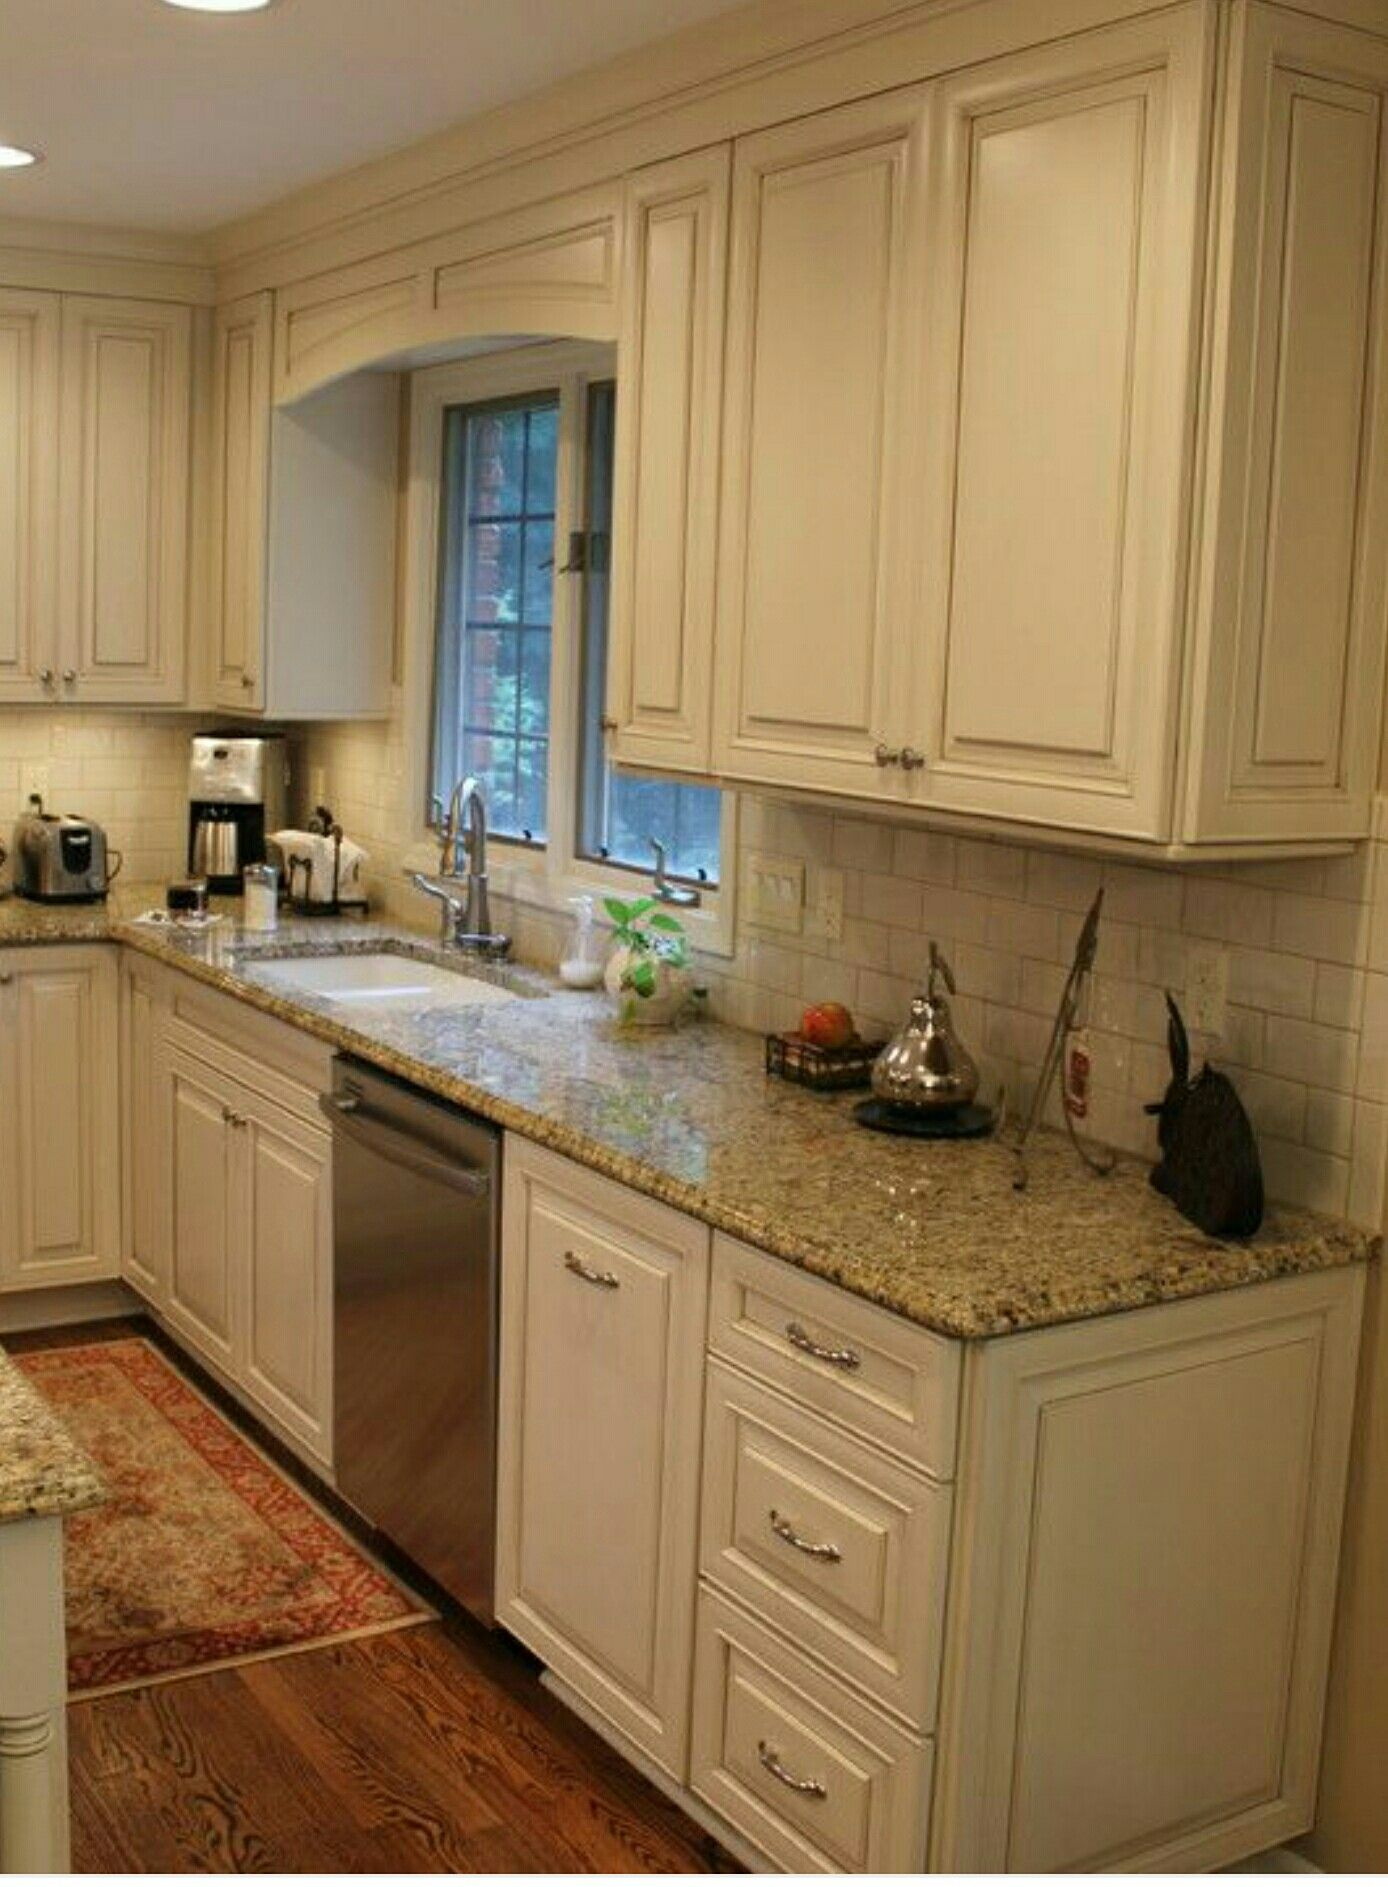 White Cabinets Subway Tile Beige Granite Countertops: white kitchen cabinets with granite countertops photos